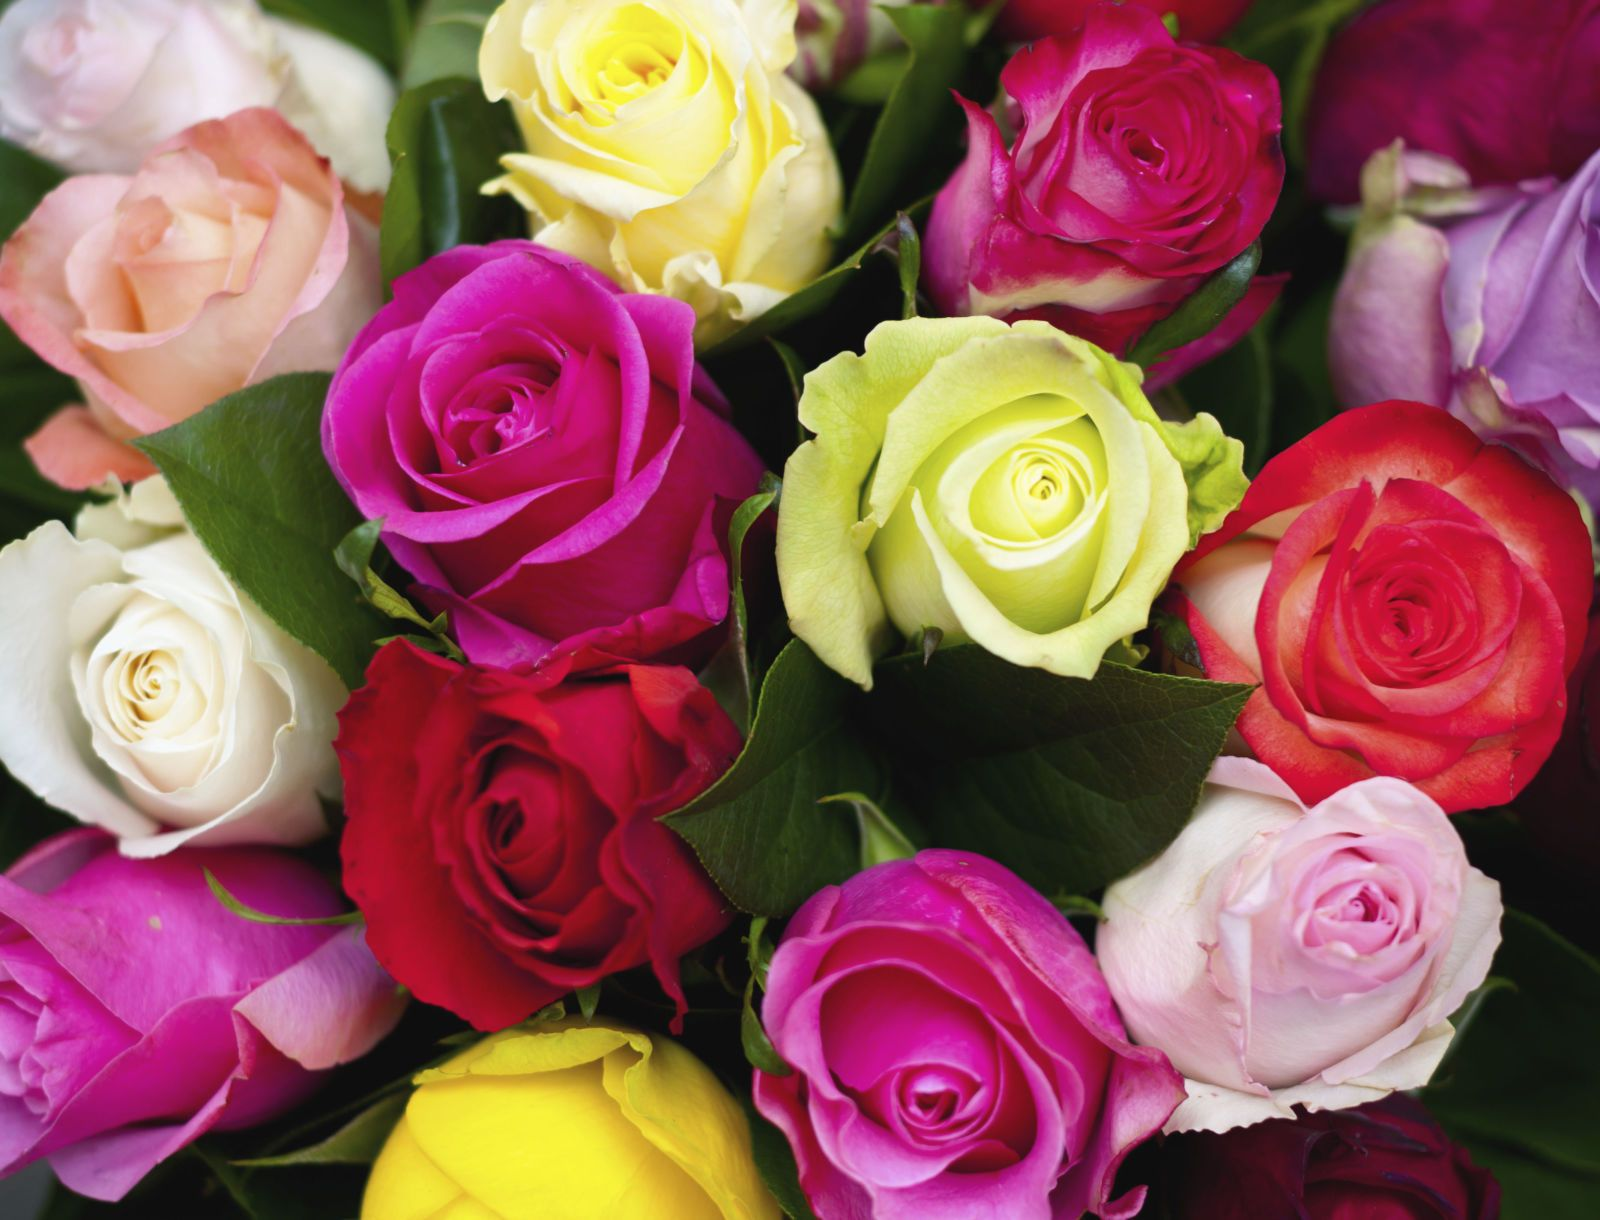 Coral Roses are The Perfect Way to Celebrate Your First Valentine's Day  Together | Yellow rose meaning, Rose color meanings, Different color roses